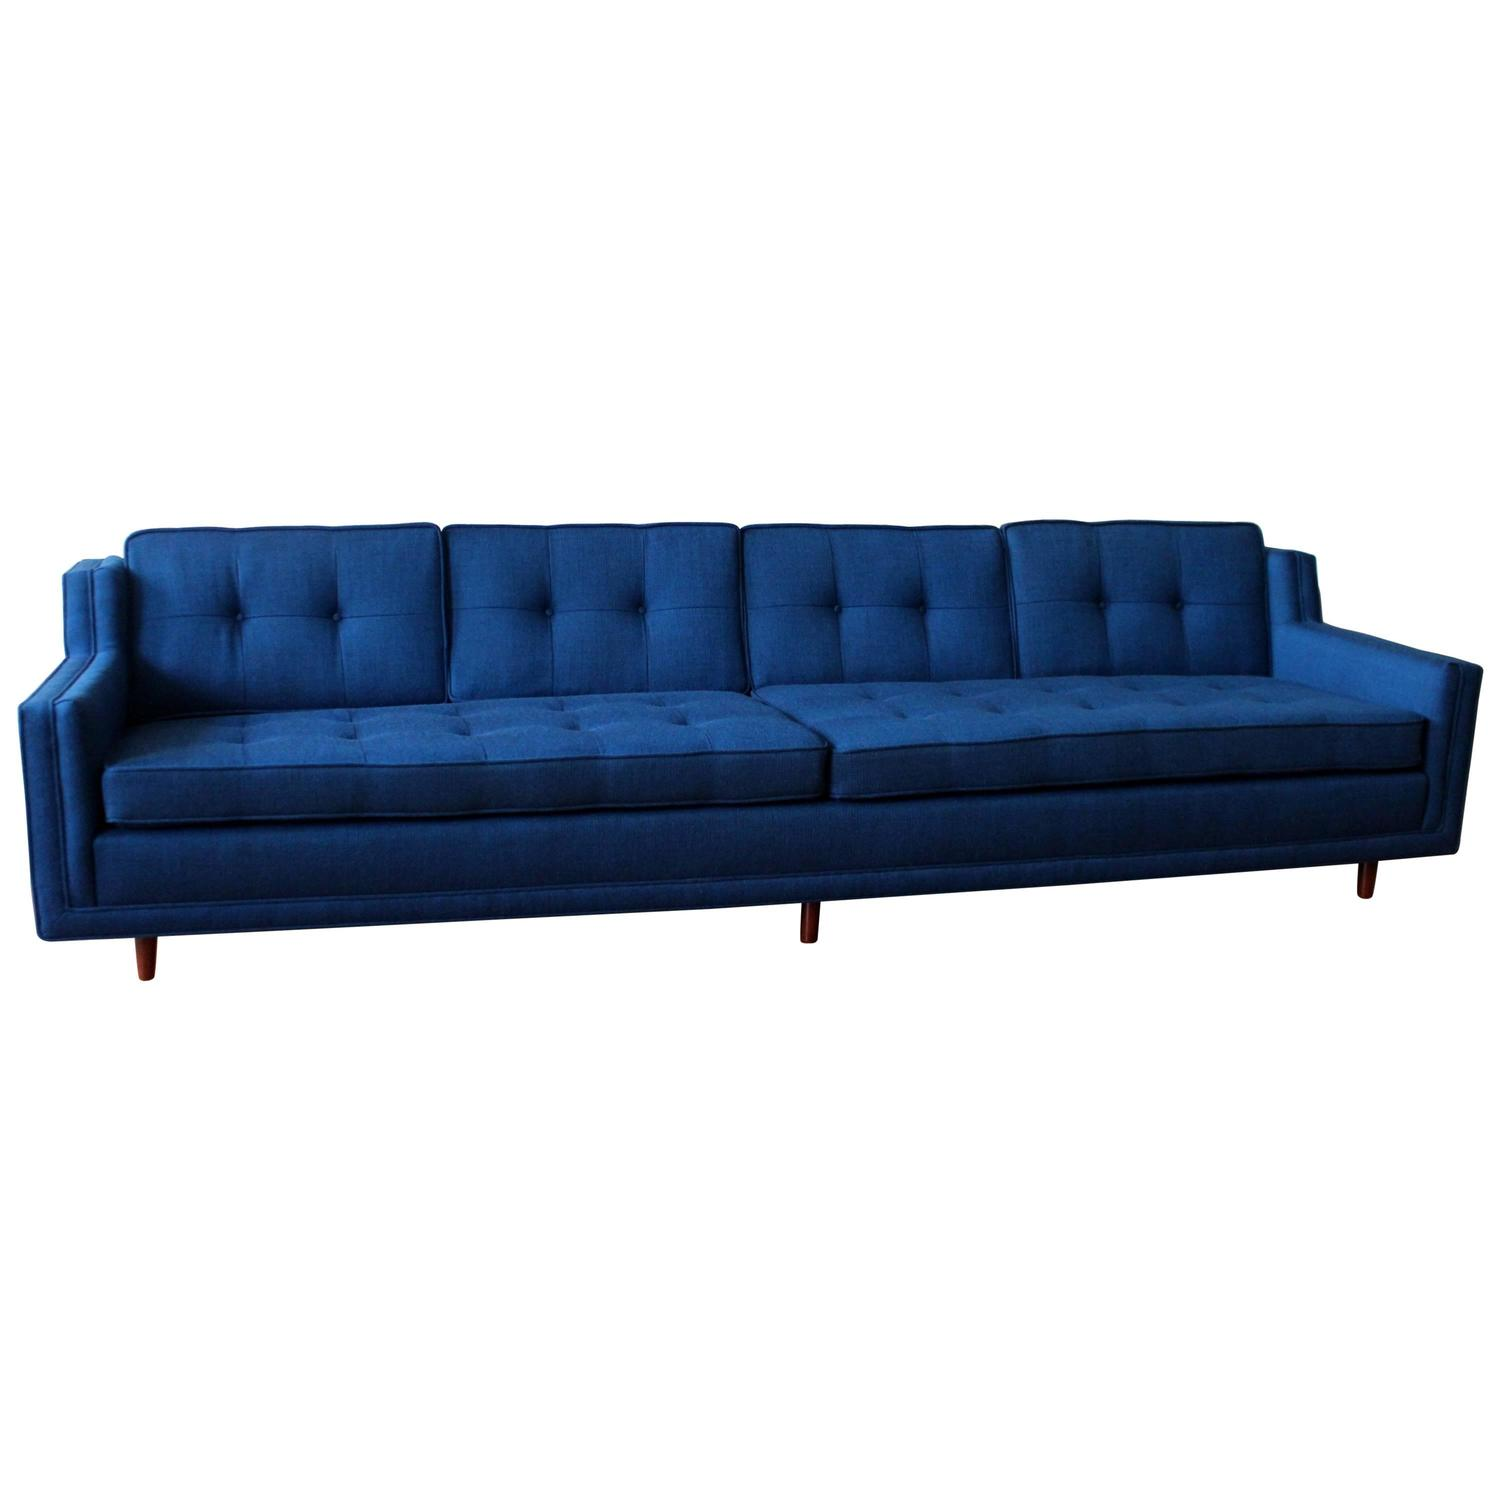 Modern Low Sofa Nice Modern Low Profile Sofa Home Furniture Thesofa